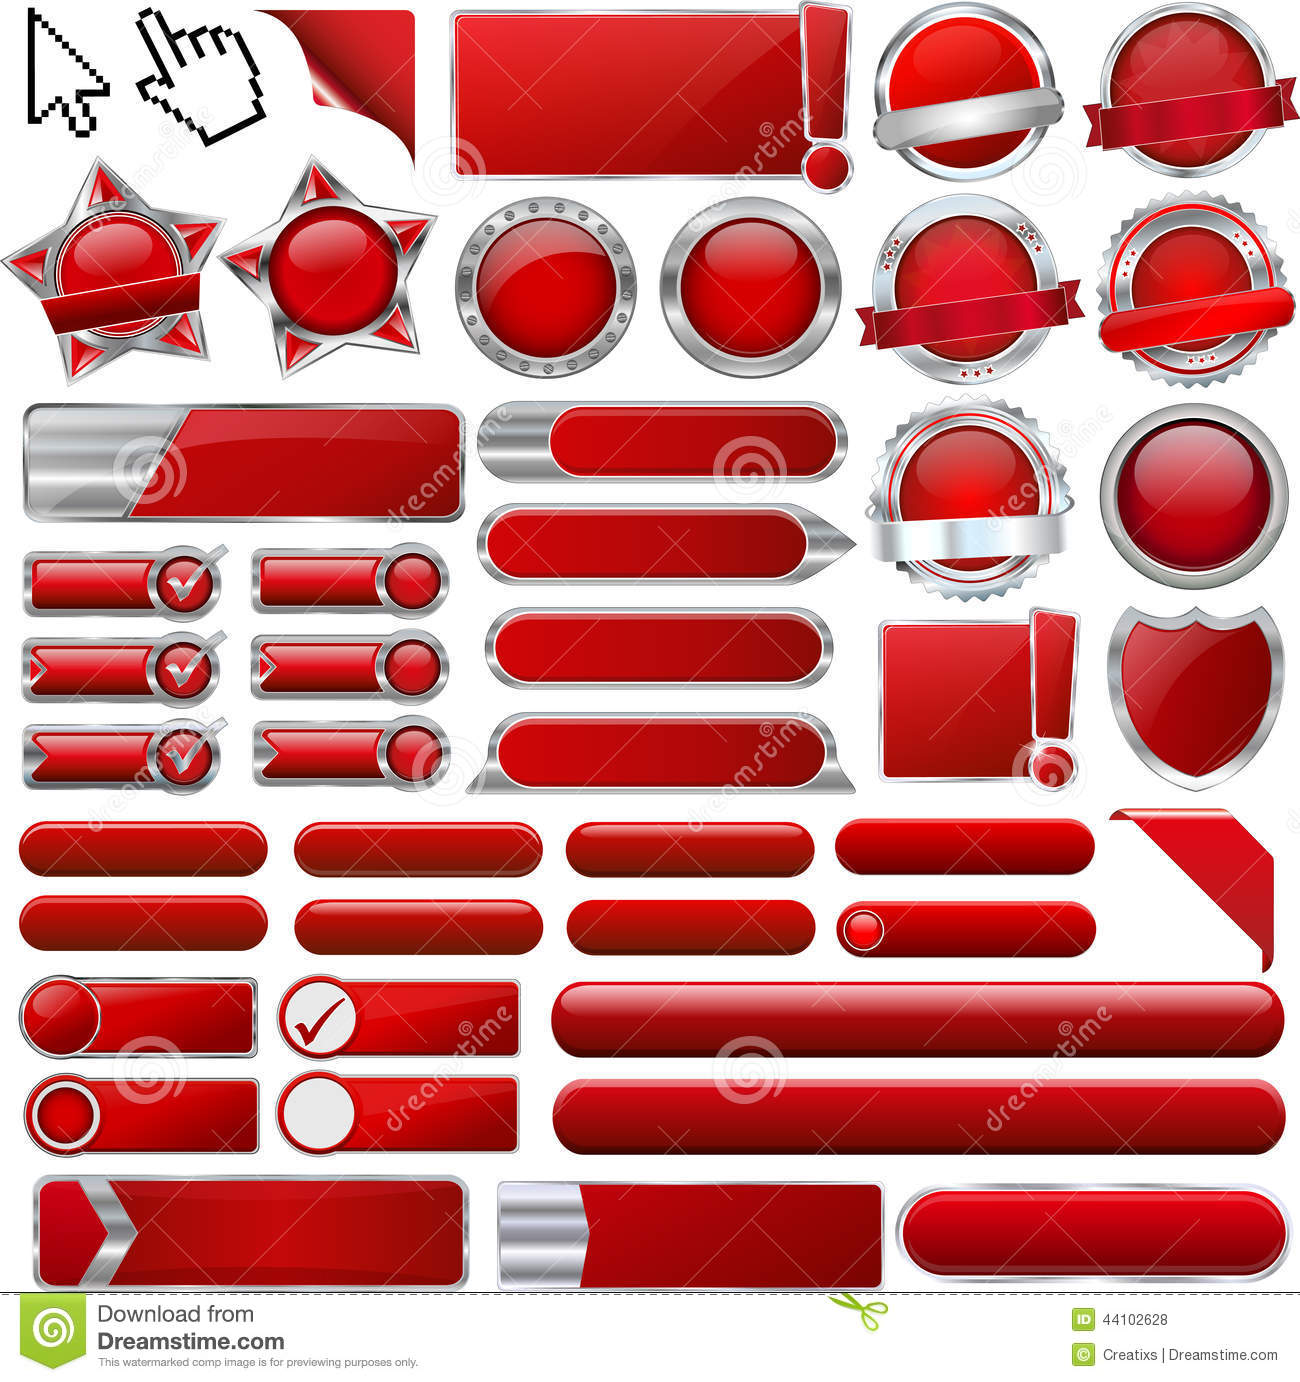 Red Glossy Web Icons and Buttons